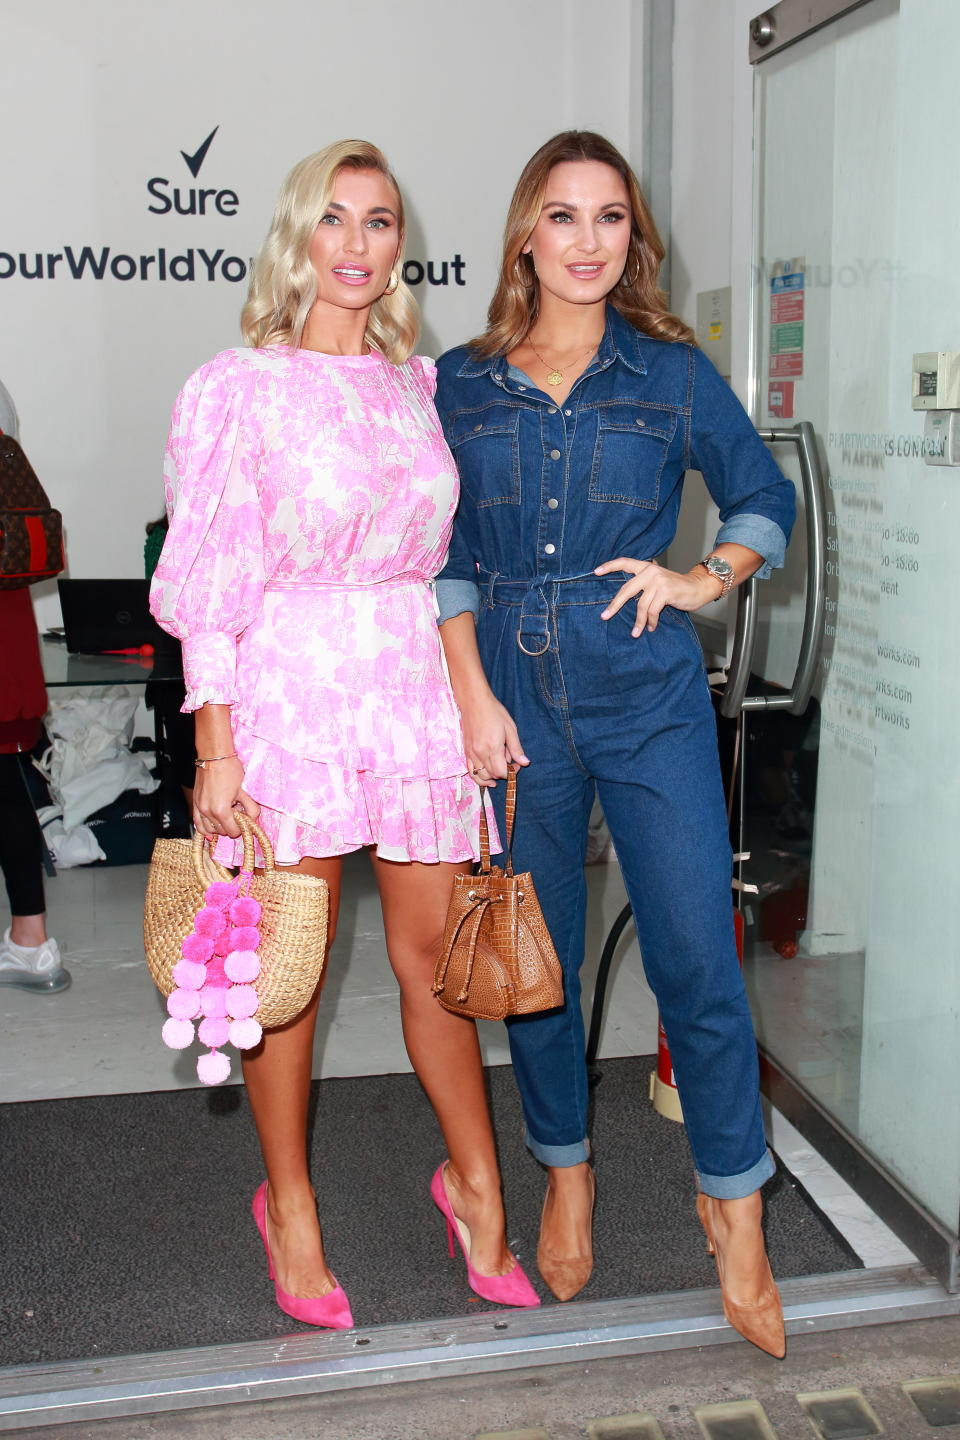 Sam & Billie Faiers arriving for Sures Everyday Gym Your World Your Workout Exclusive Event, Eastcastle Street London (Photo credit should read Jamy / Barcroft Media via Getty Images)